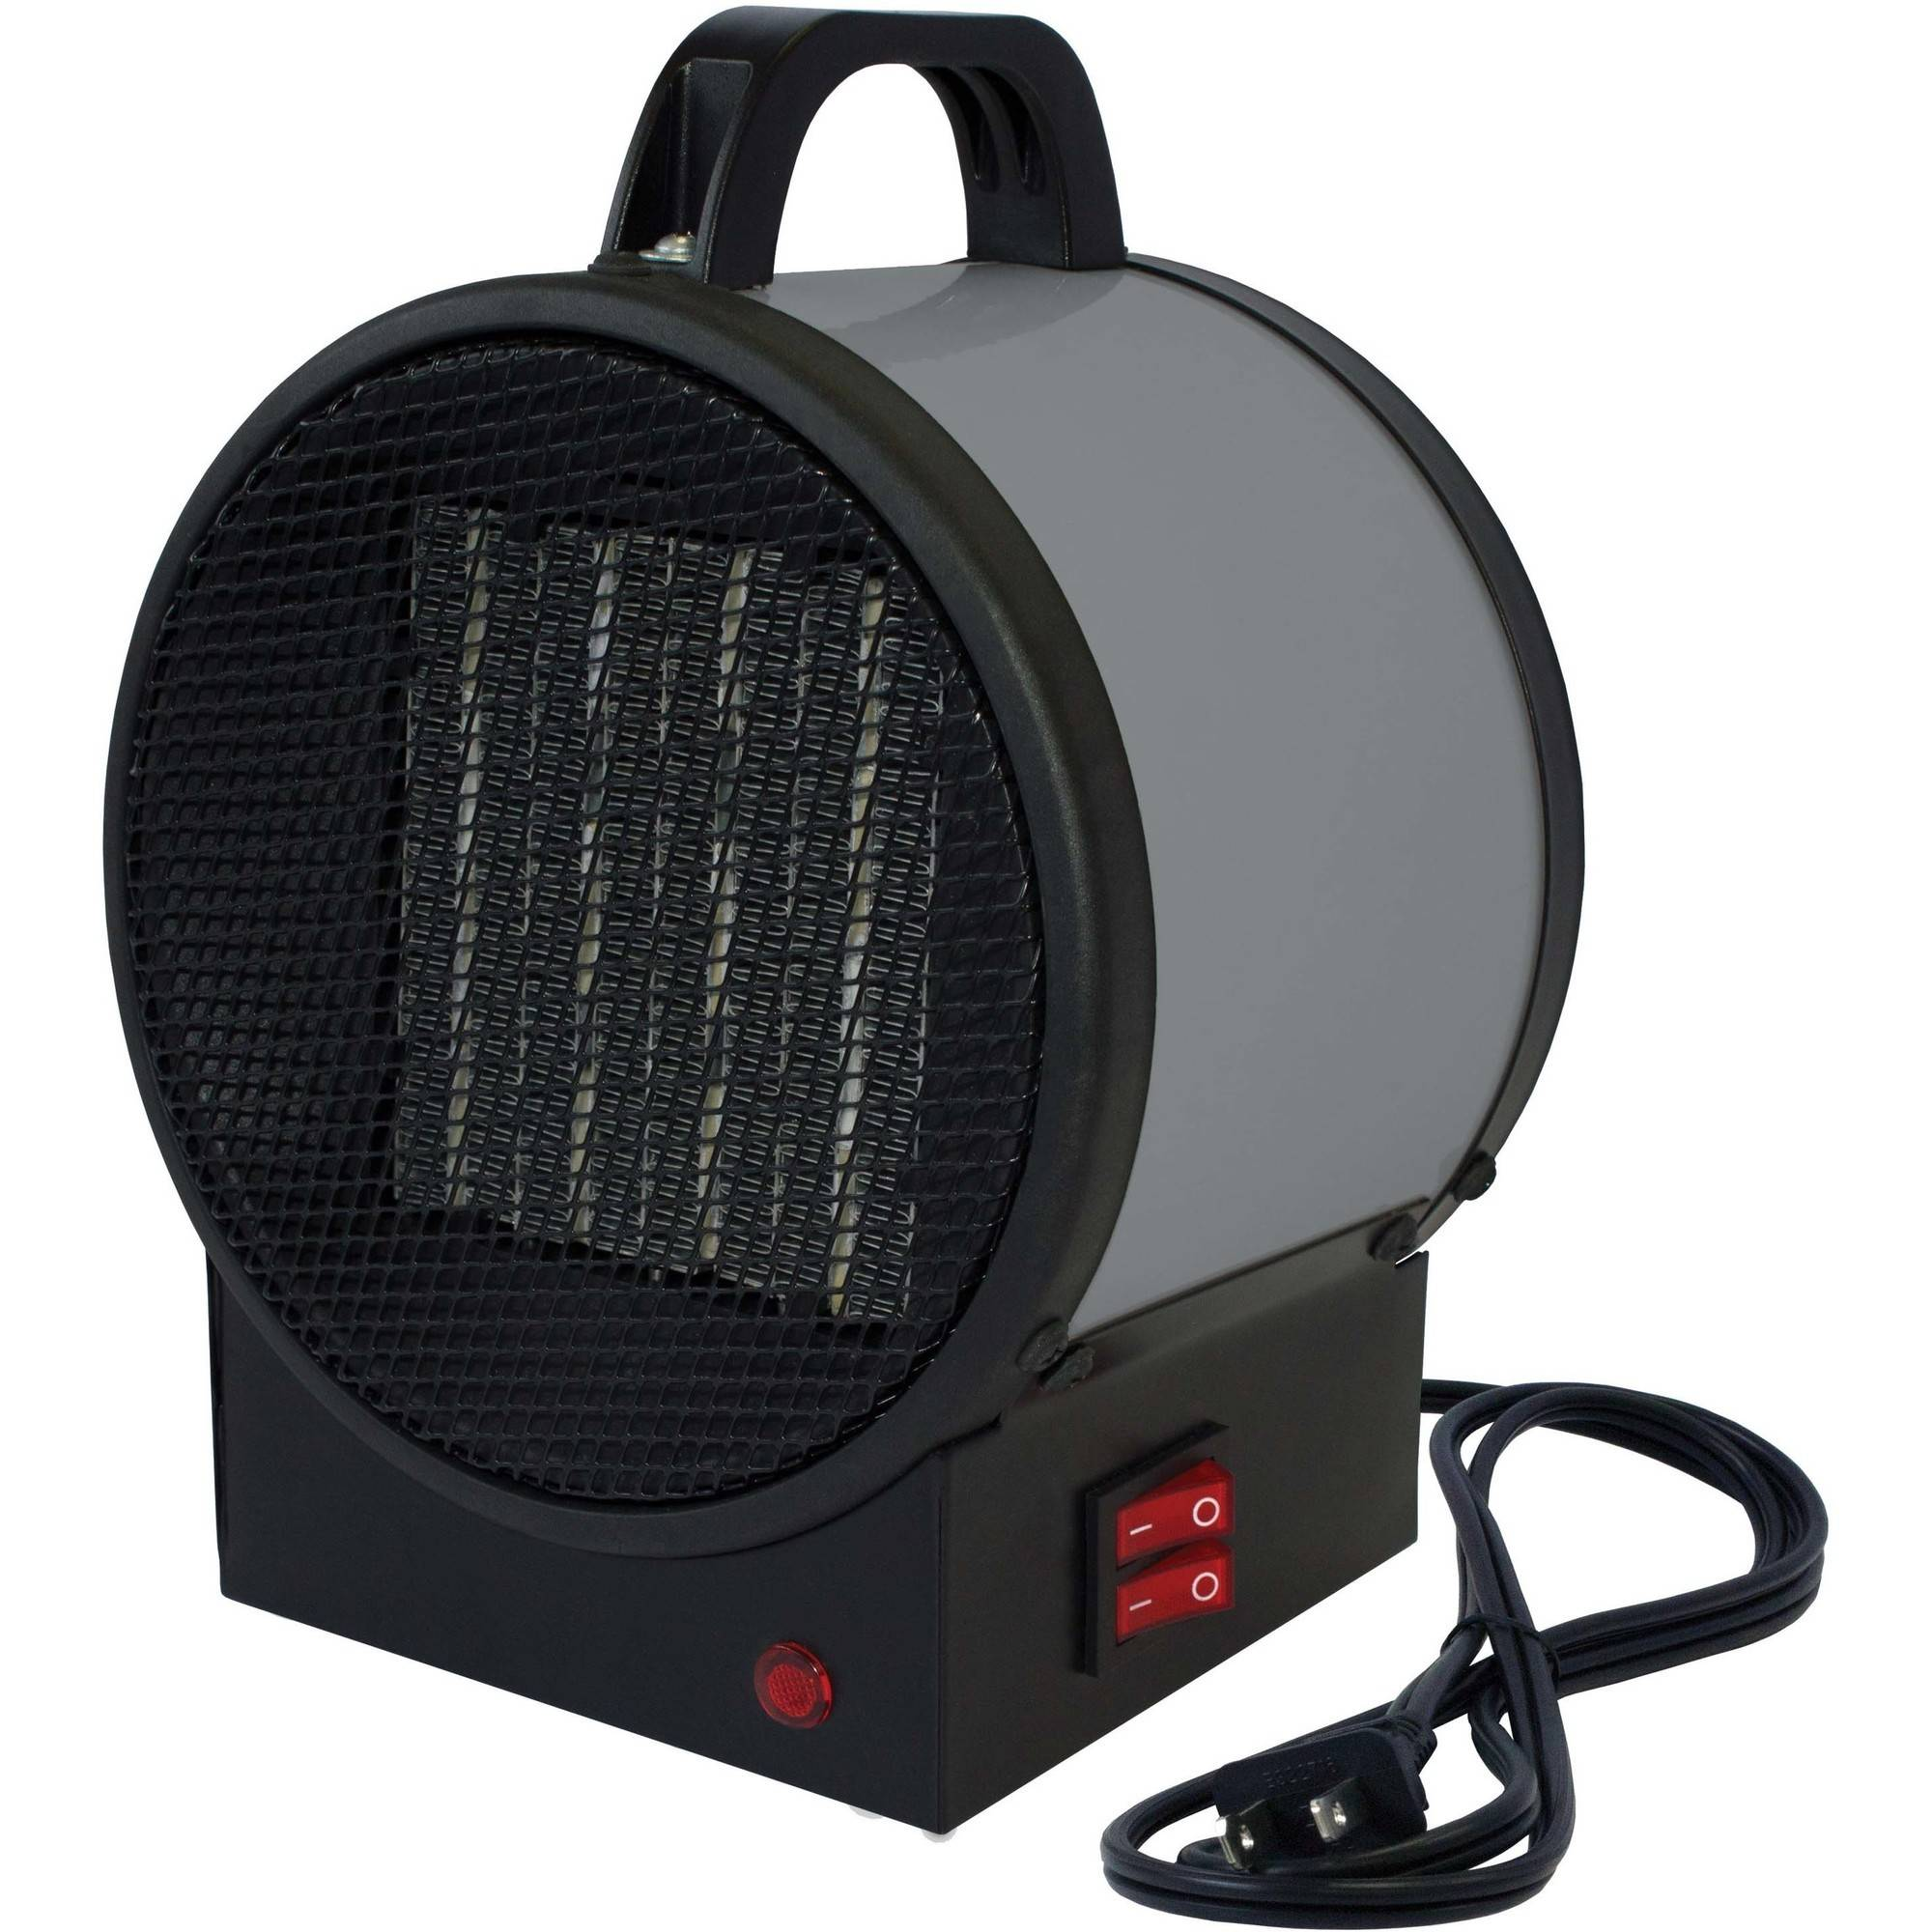 King PUH1215T 120V 1500W Small Portable Utility Heater, Grey